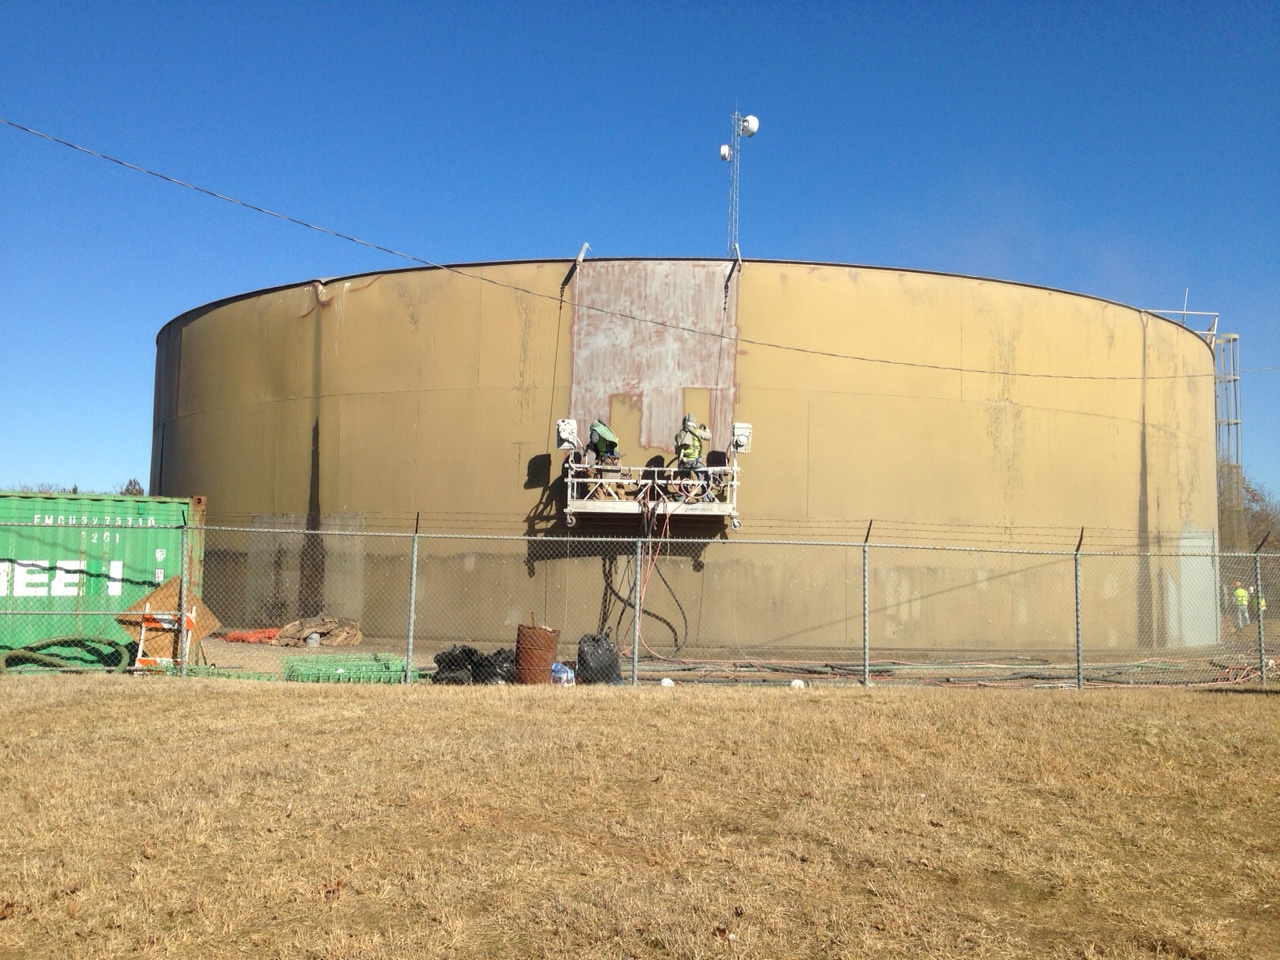 McGee Creek Regulating Tank Renovation. Atoka, Oklahoma